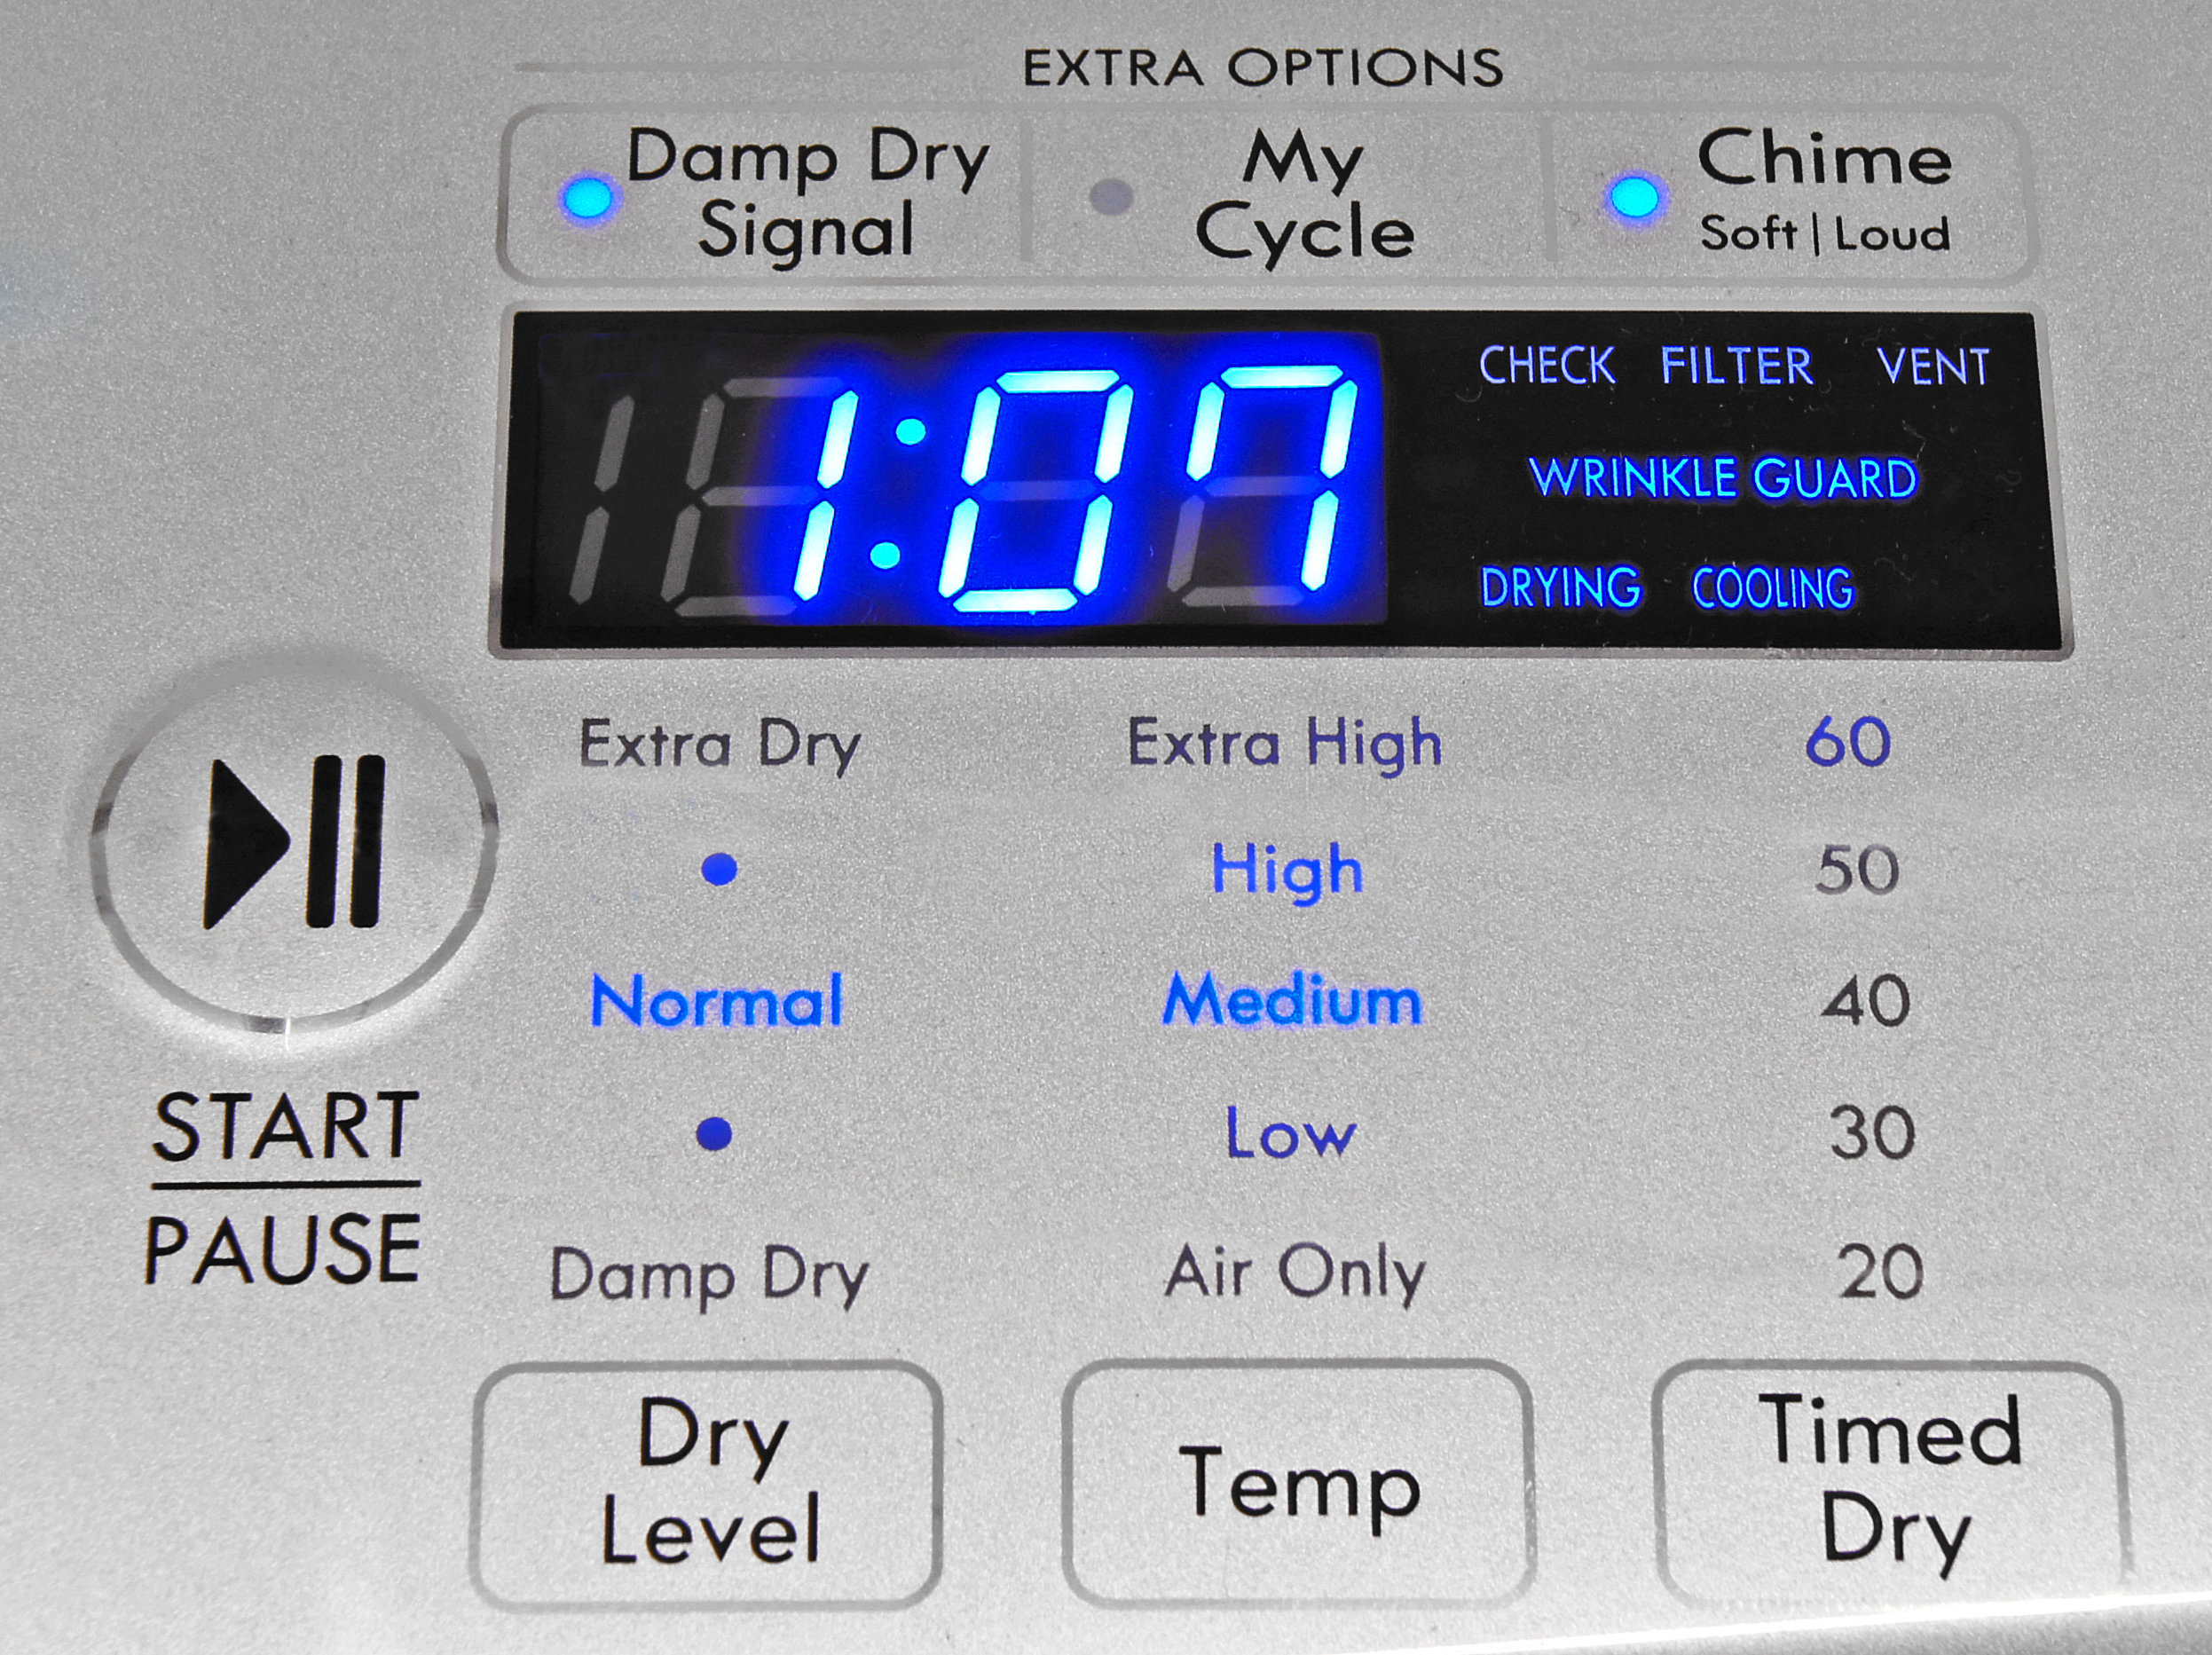 The Kenmore Elite 61422's feature list is slim, but features useful options like a customizable My Cycle.